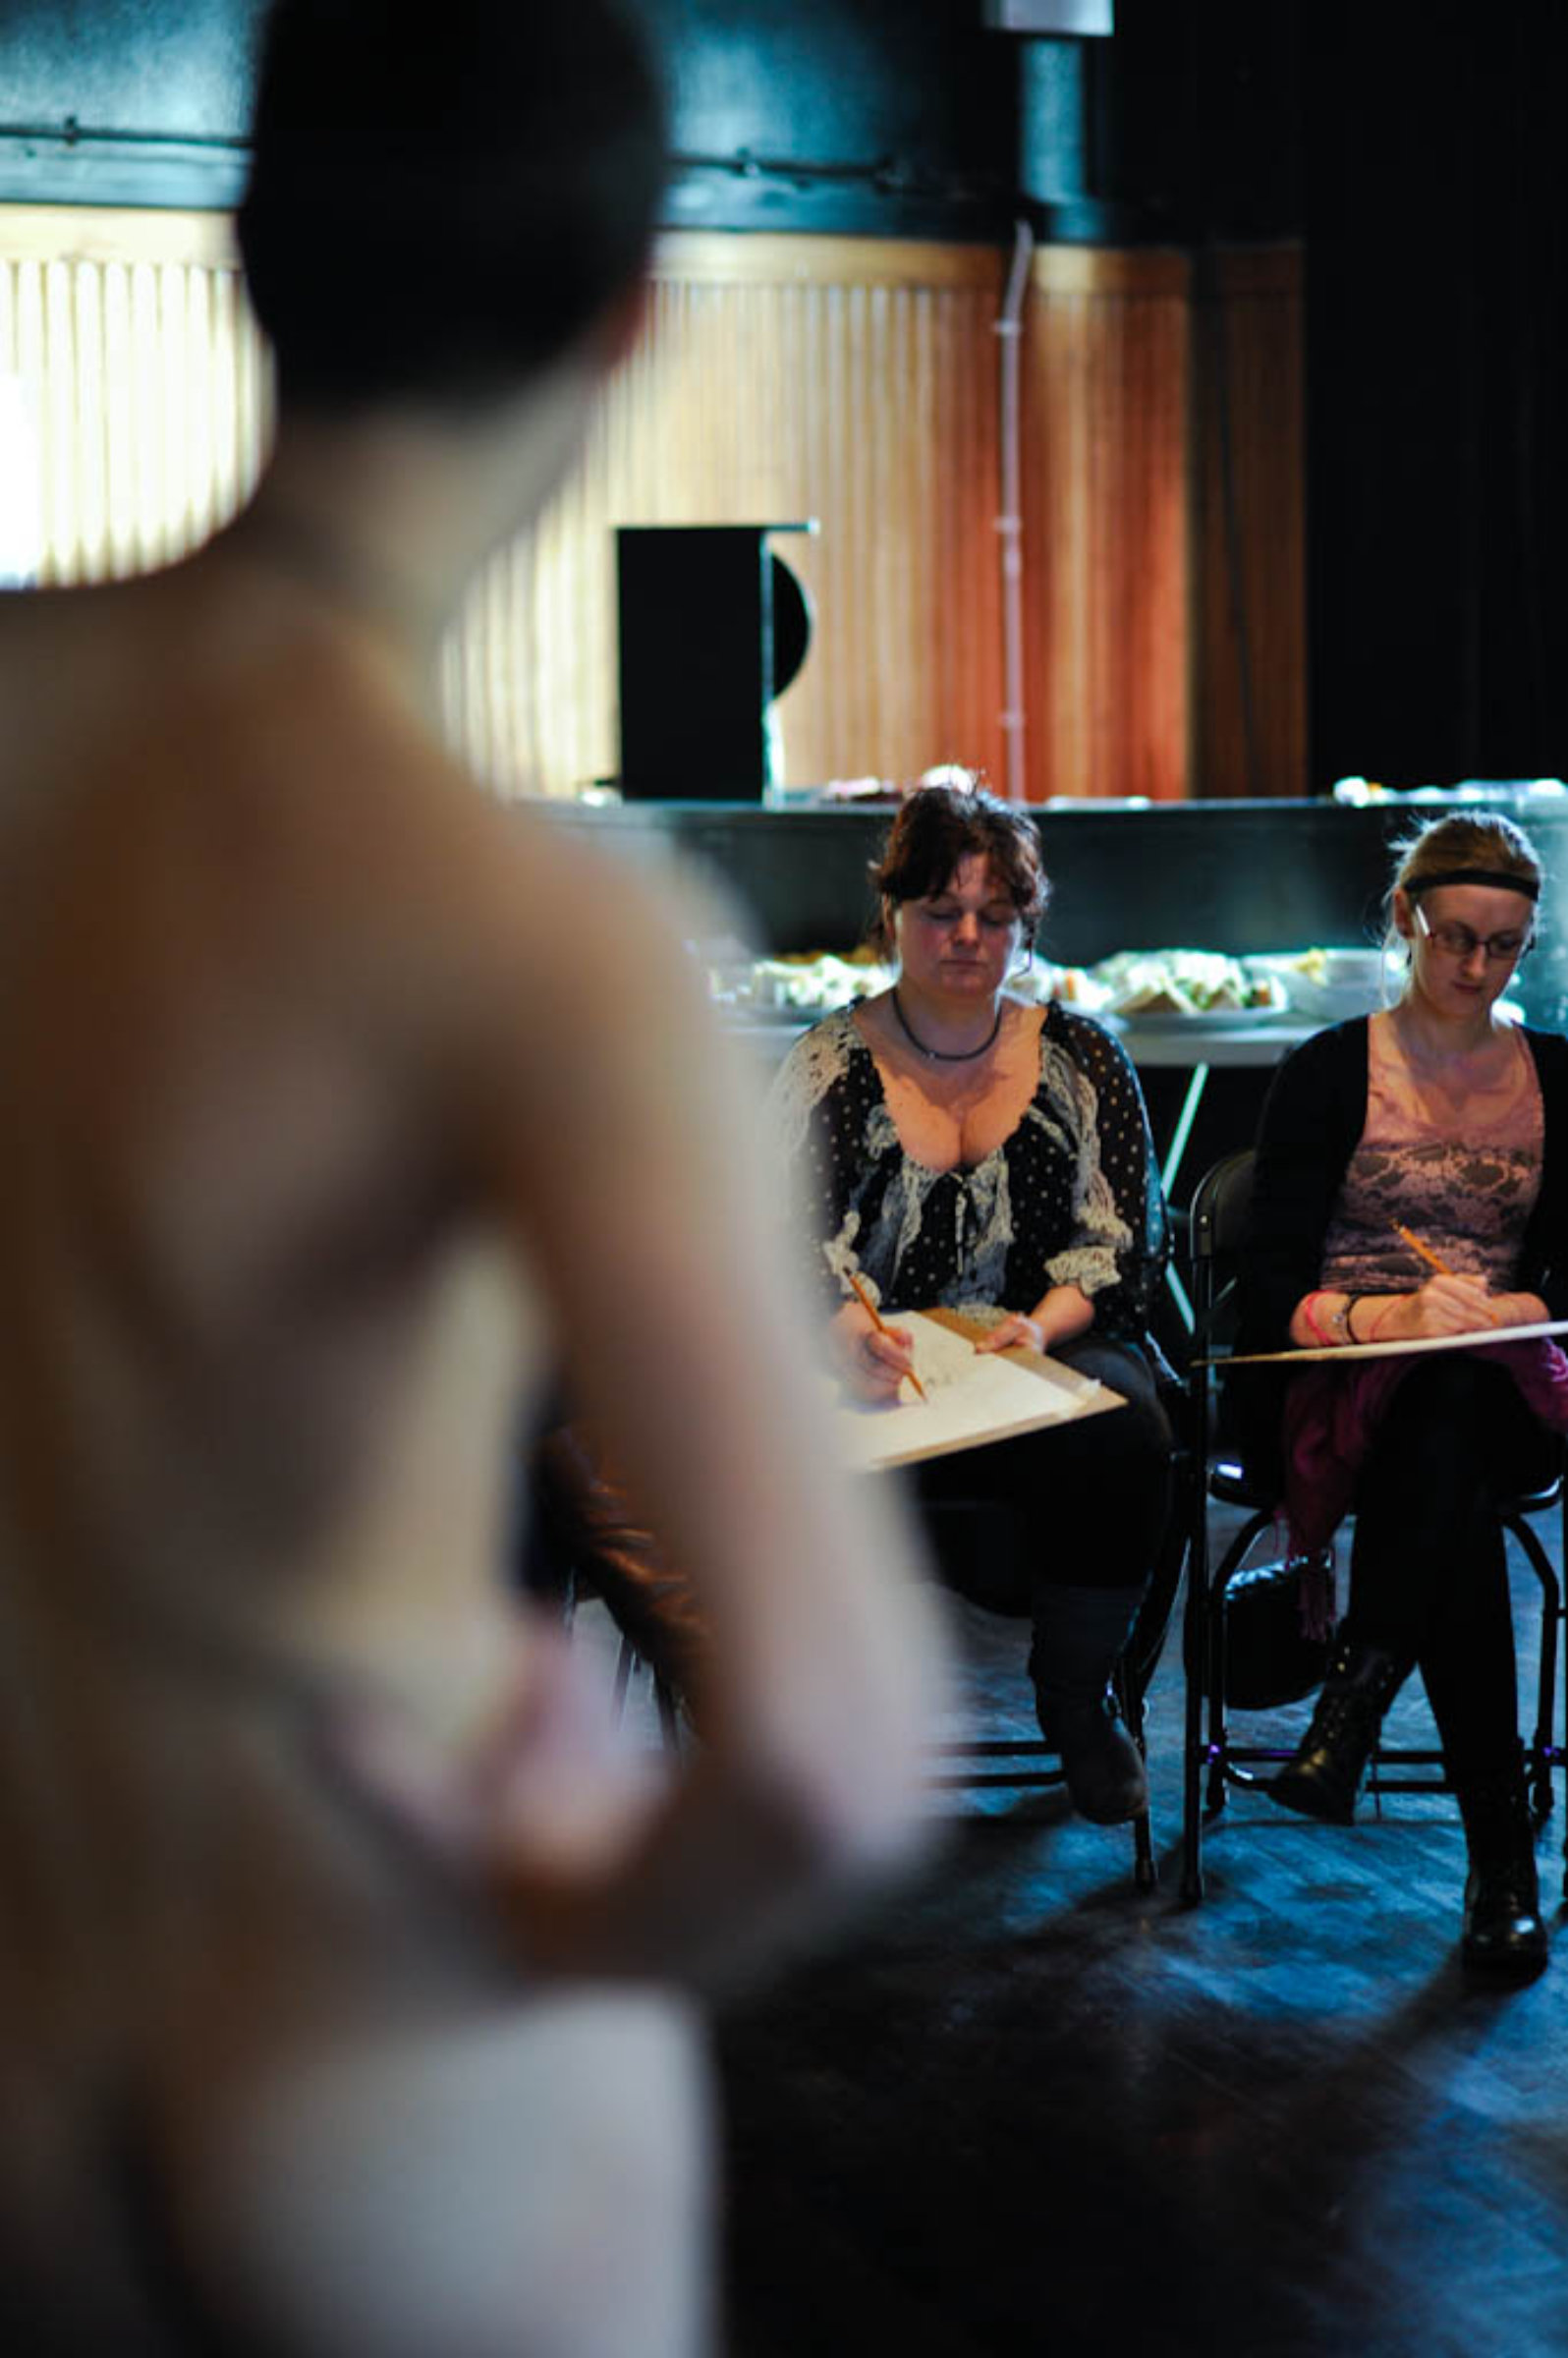 Nude art classes in leeds apologise, but